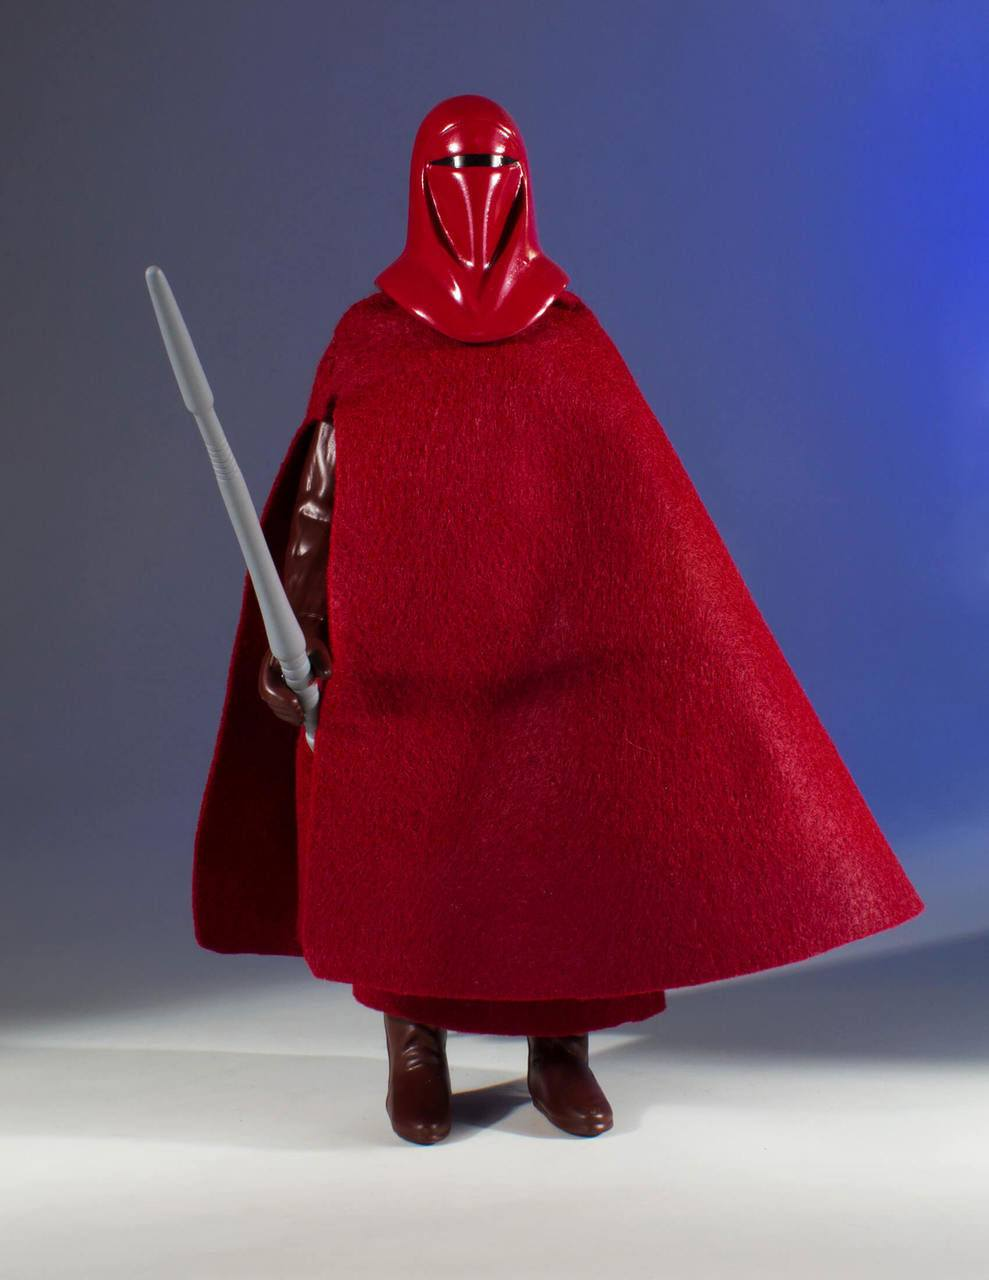 Star Wars Jumbo Kenner Action Figure Emperor's Royal Guard 30 cm